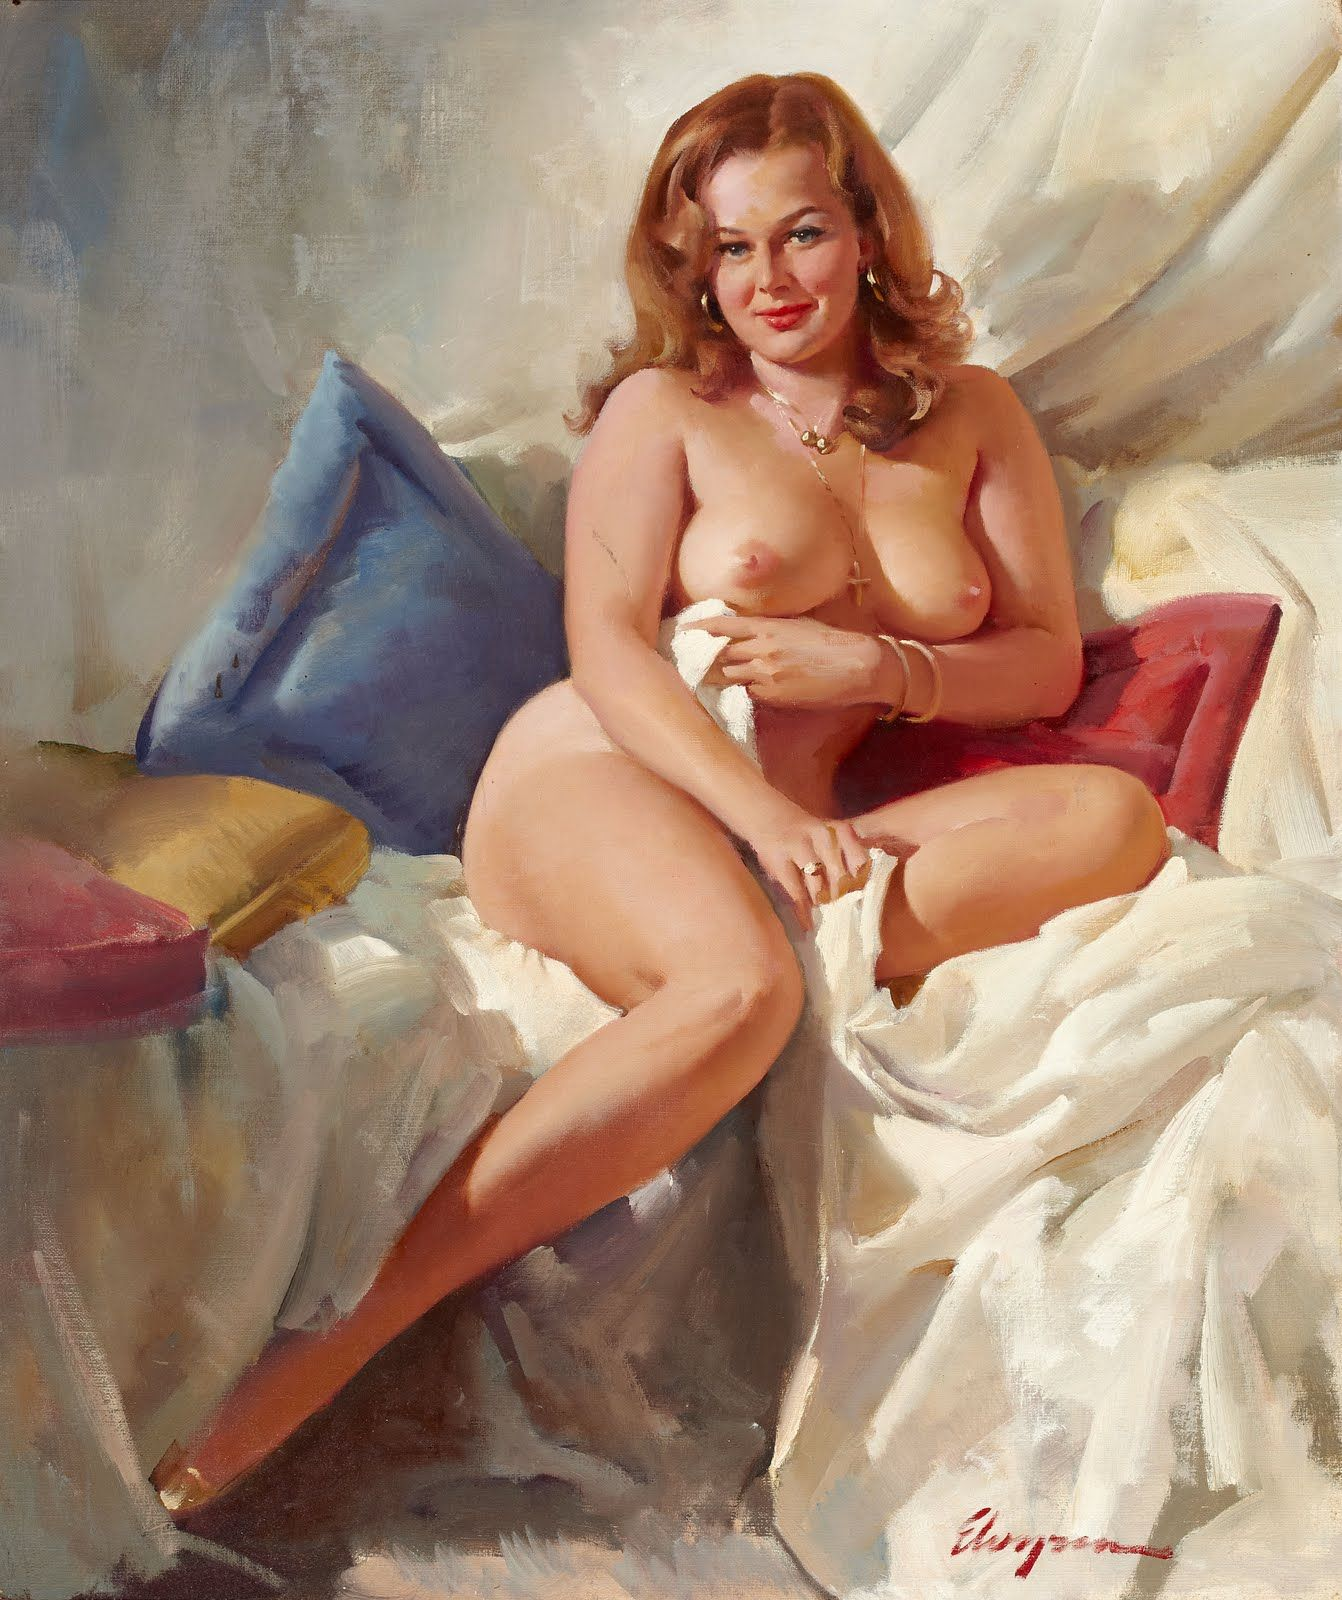 from Elliot fantasy pin up girls nude